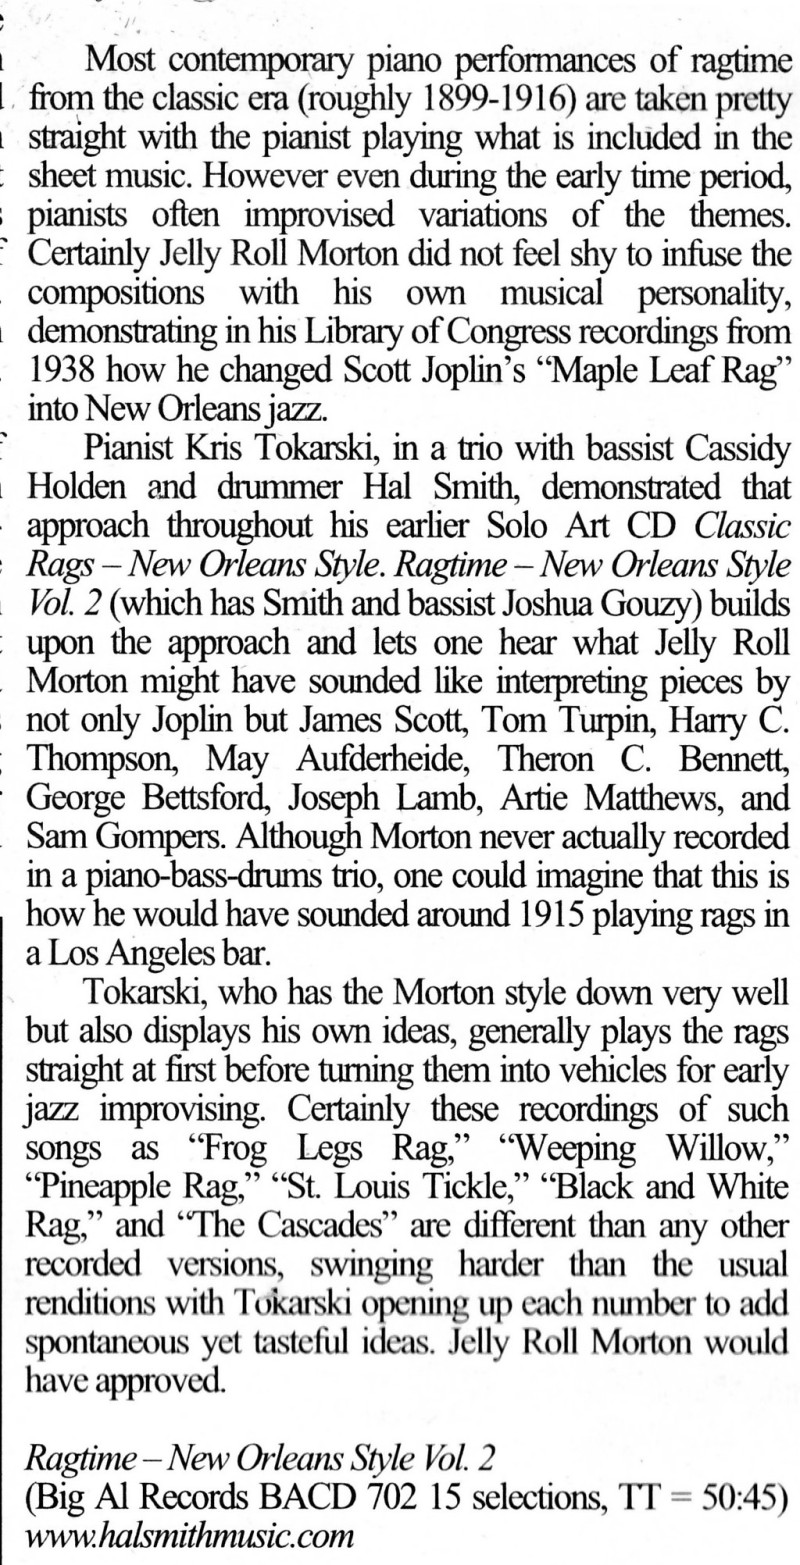 RNOS2 Review from Feb 2019 Syncopated Times